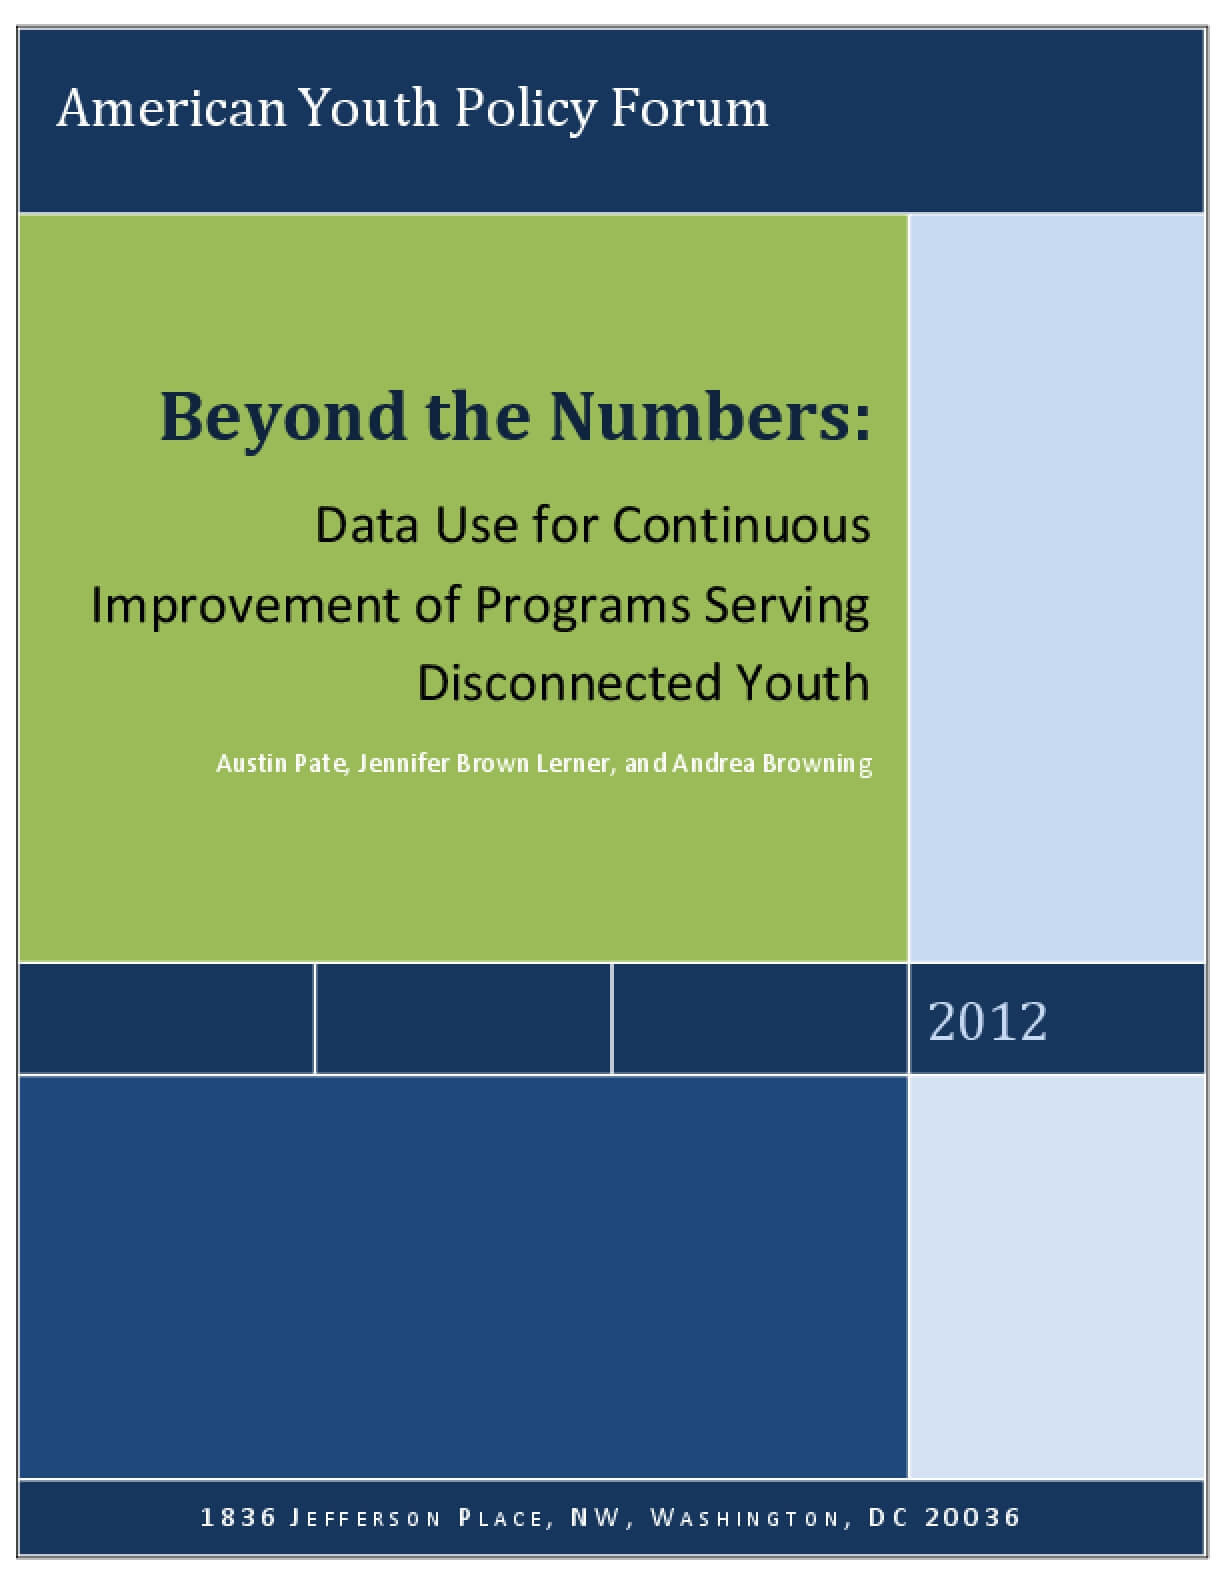 Beyond the Numbers: Data Use for Continuous Improvement of Programs Serving Disconnected Youth